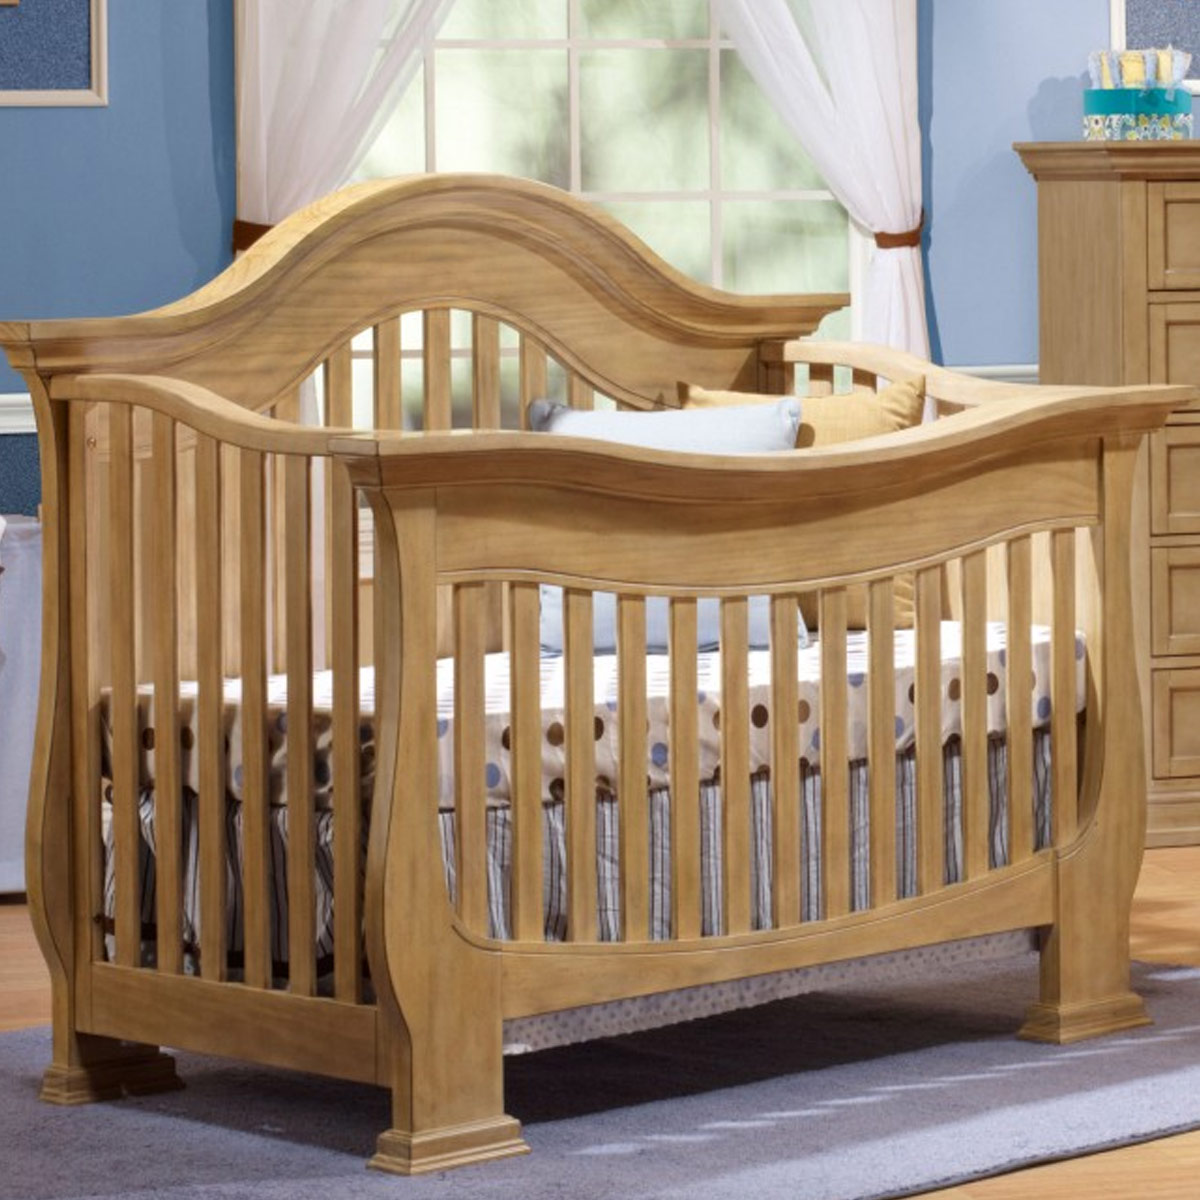 using cribs neutral nursery blue bed with bedding exciting decoration rectangular including gray jungle valance light and curved cr solid wood various cherry crib room orange paint alphabet baby red of along engaging image wall white pattern animal cream gorgeous